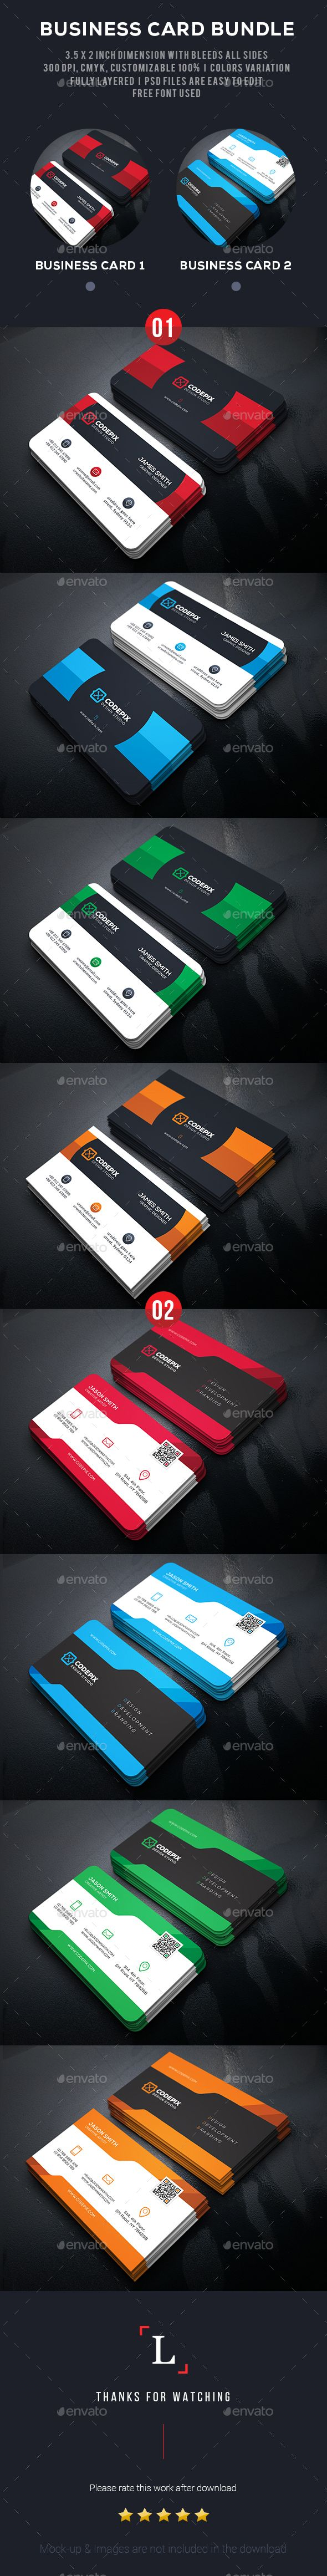 Shape Business Card Template PSD Bundle. Download here: http://graphicriver.net/item/shape-business-card-bundle/15574775?ref=ksioks